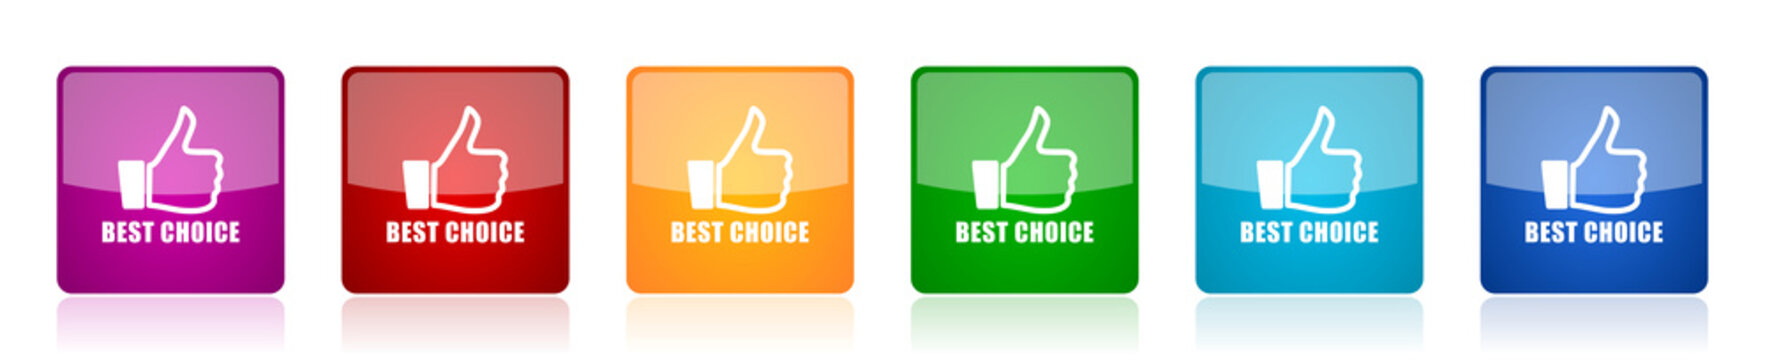 Best choice icon set, colorful square glossy vector illustrations in 6 options for web design and mobile applications